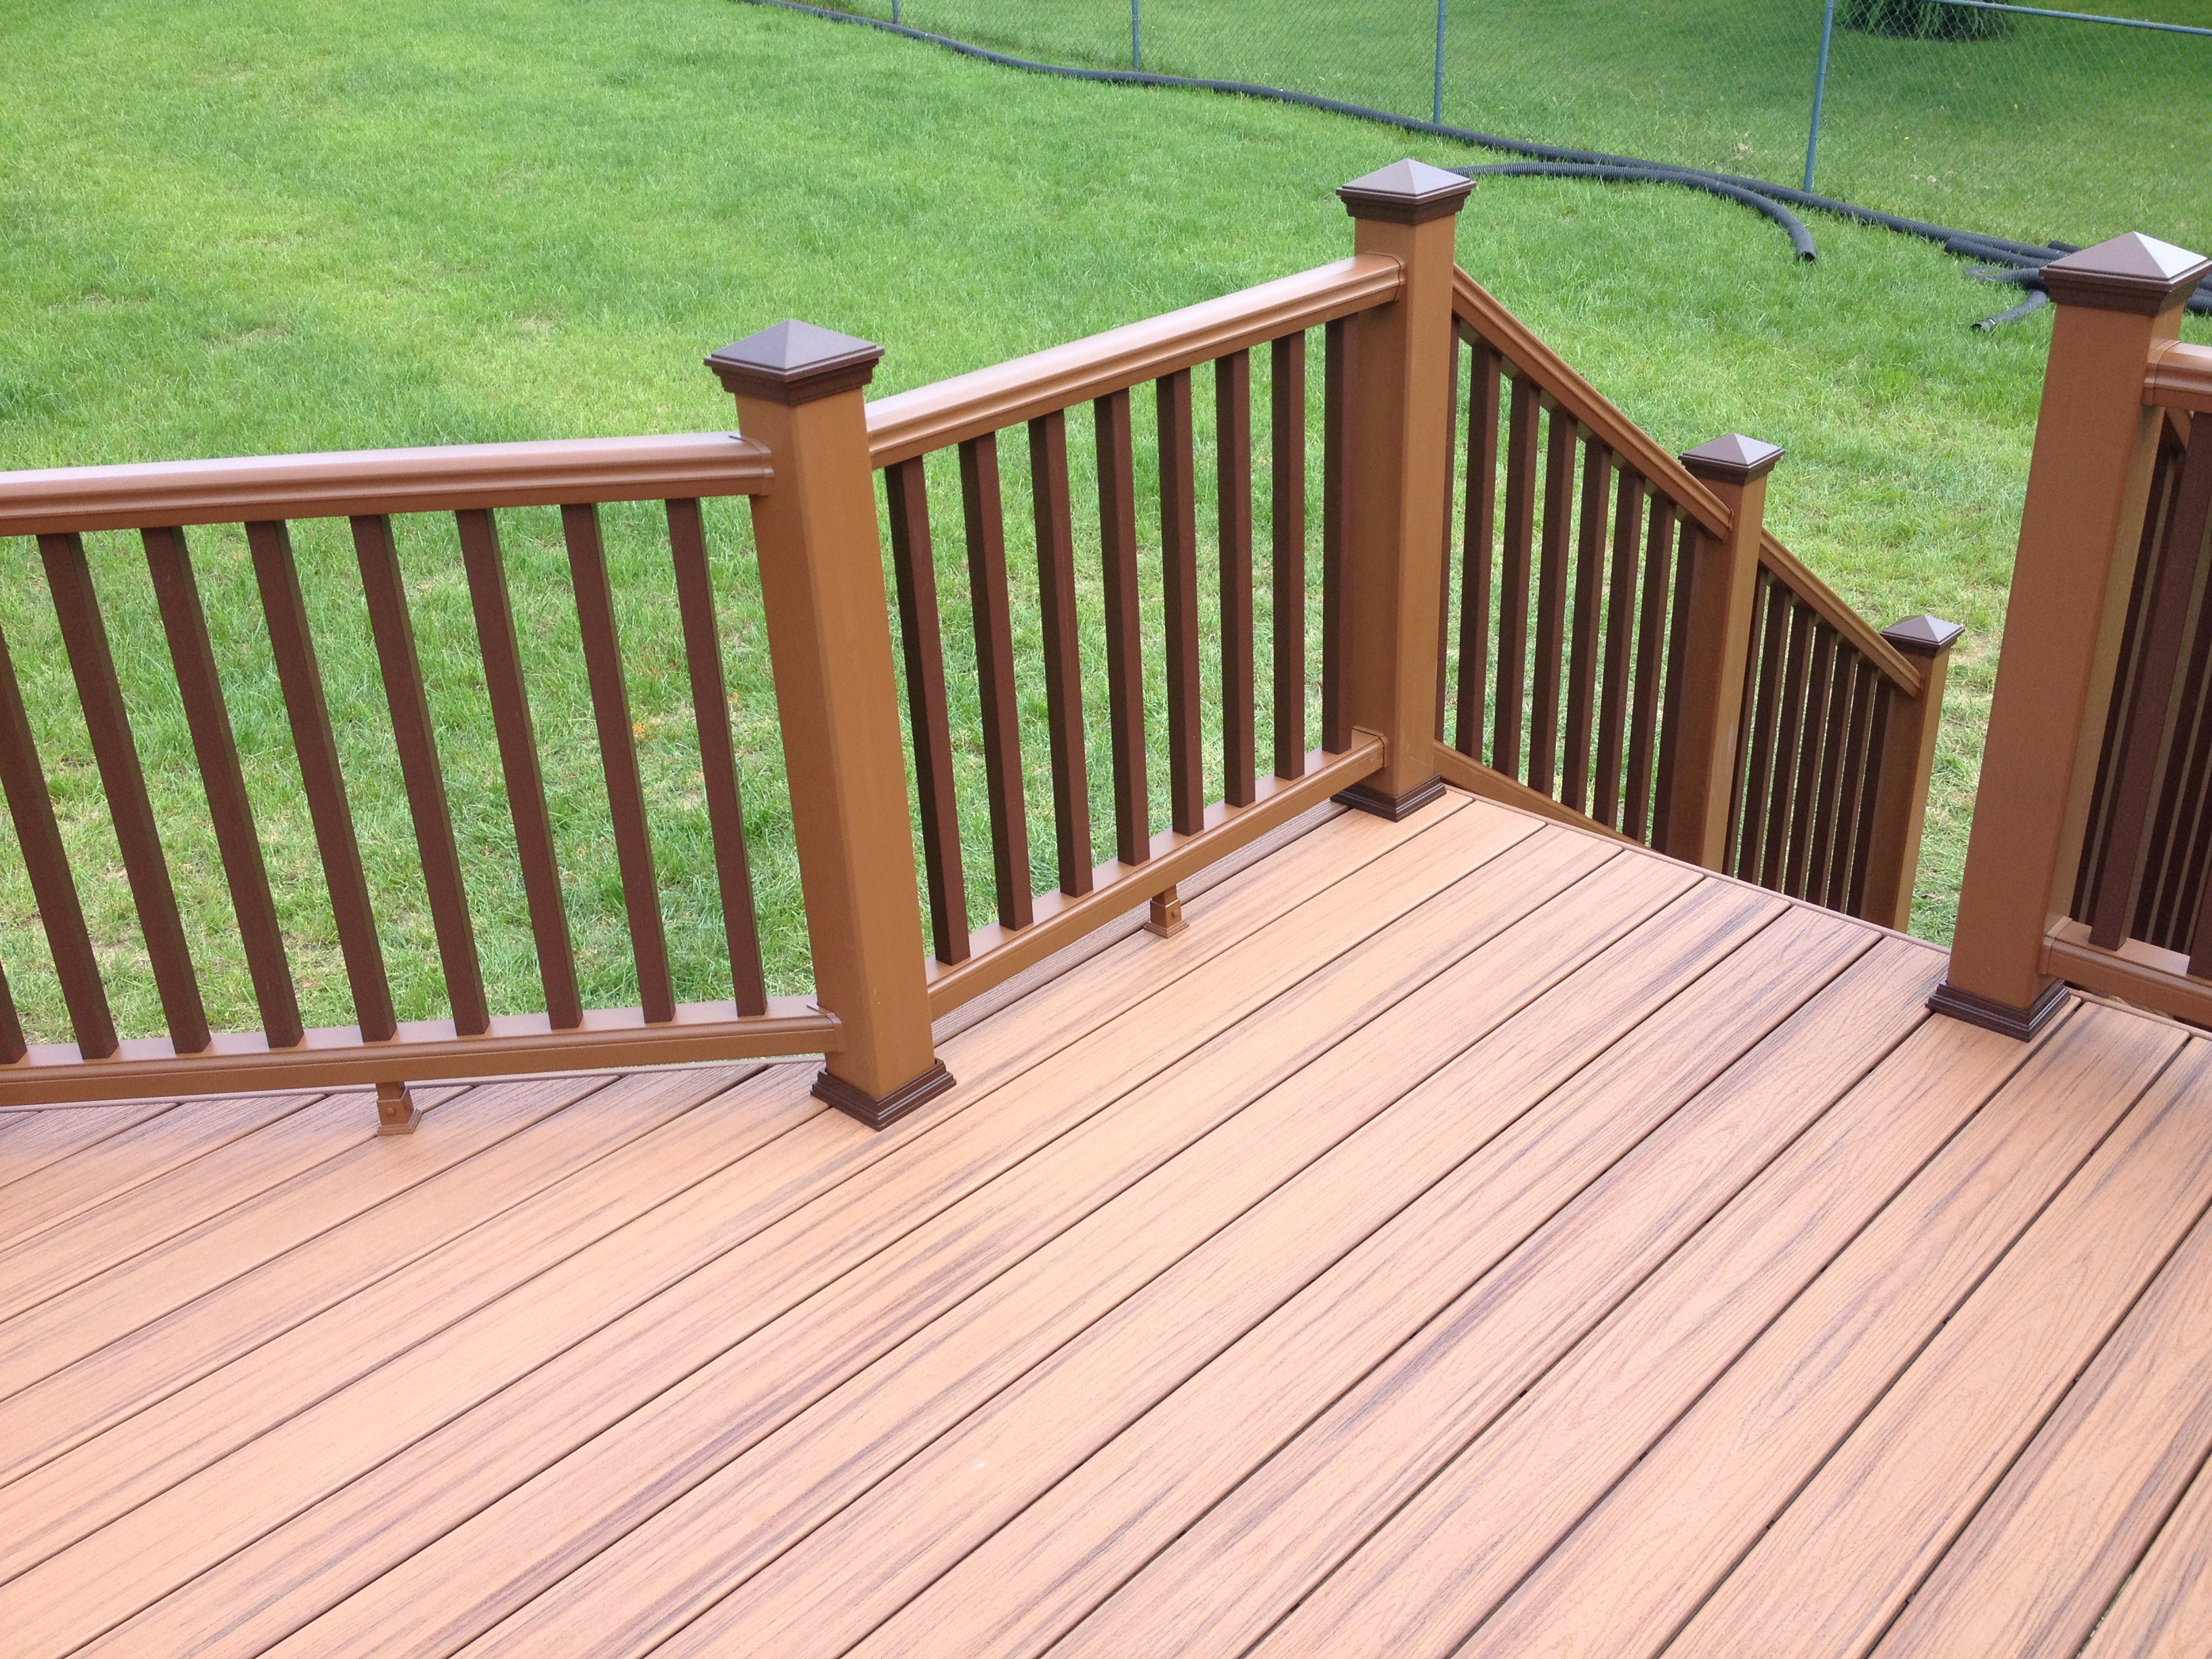 Tiki Torches Around Deck Decks Ideas with size 3264 X 2448